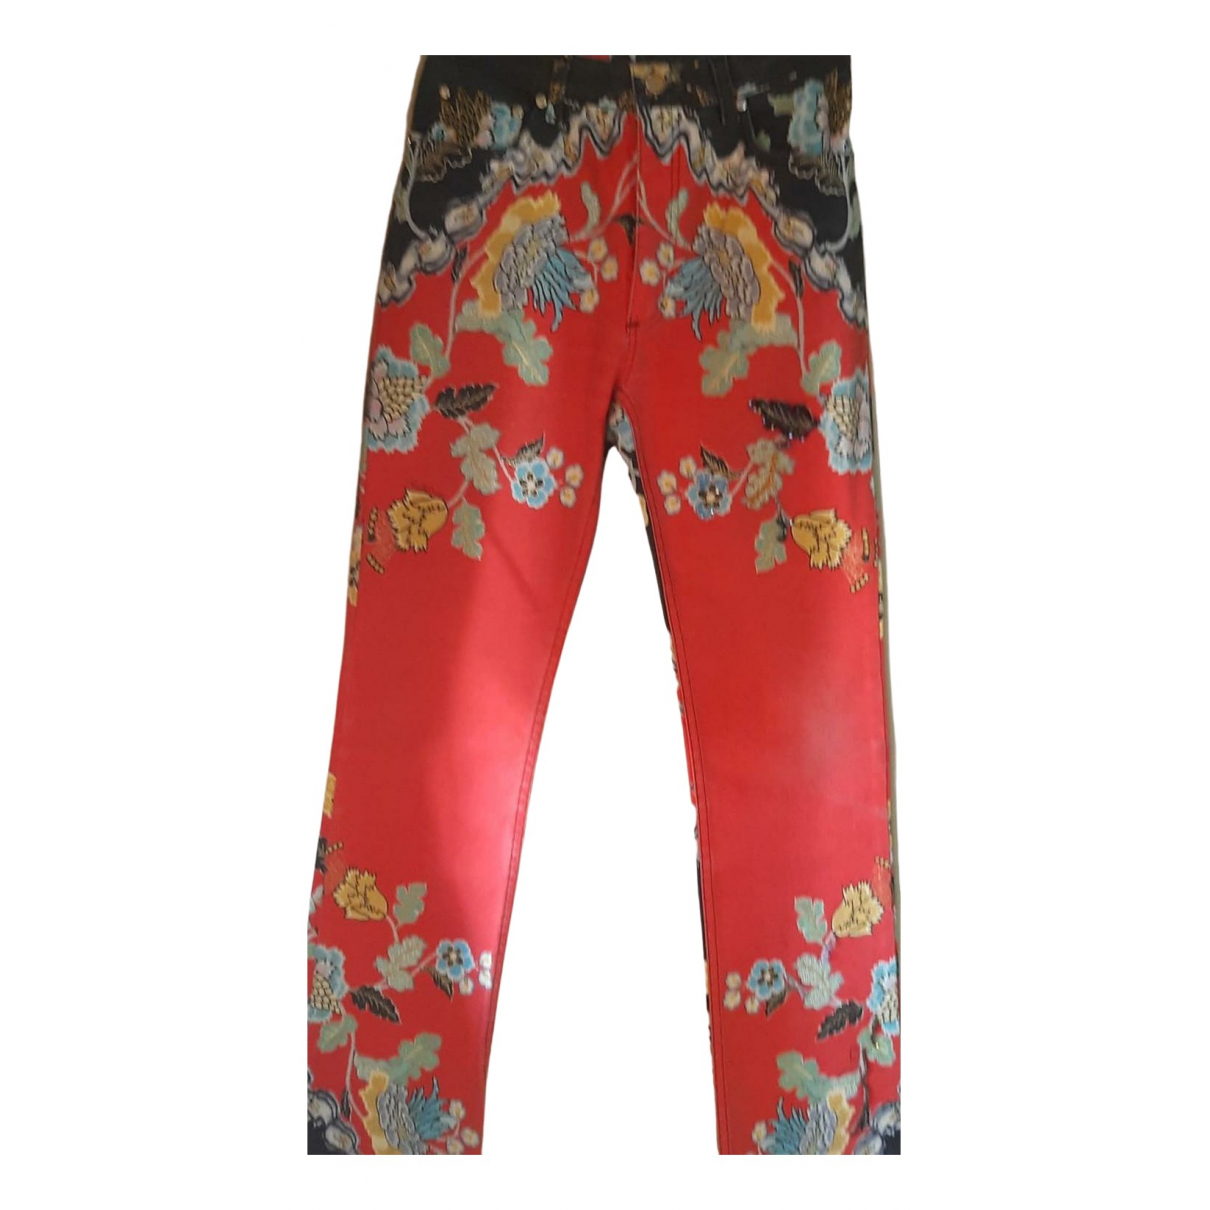 Roberto Cavalli \N Red Cotton Trousers for Women 40 IT